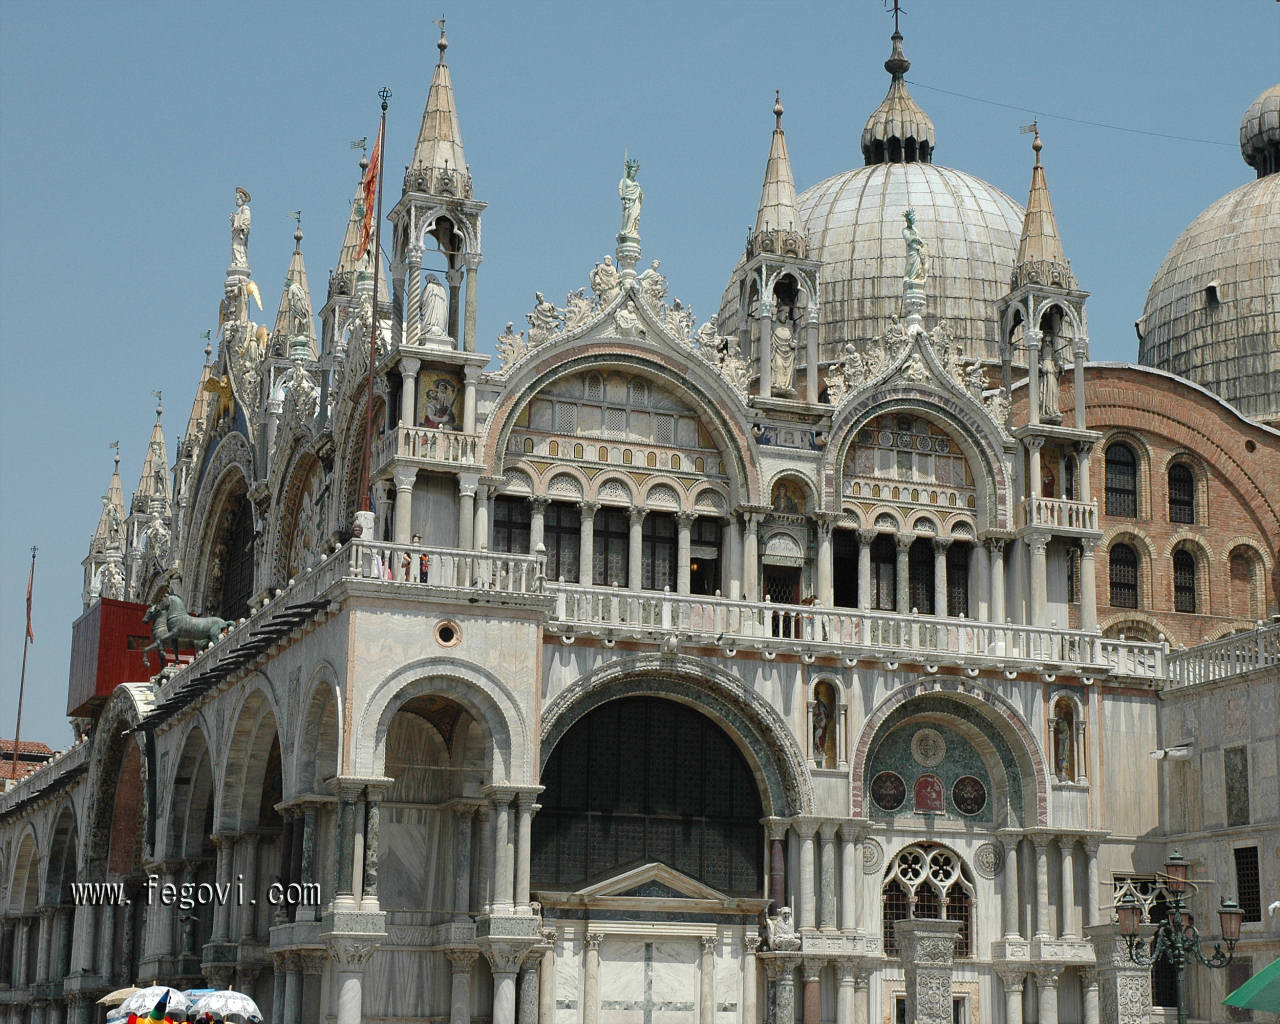 Venice Italy Architecture design lessons we can learn from venetian architecture. of how